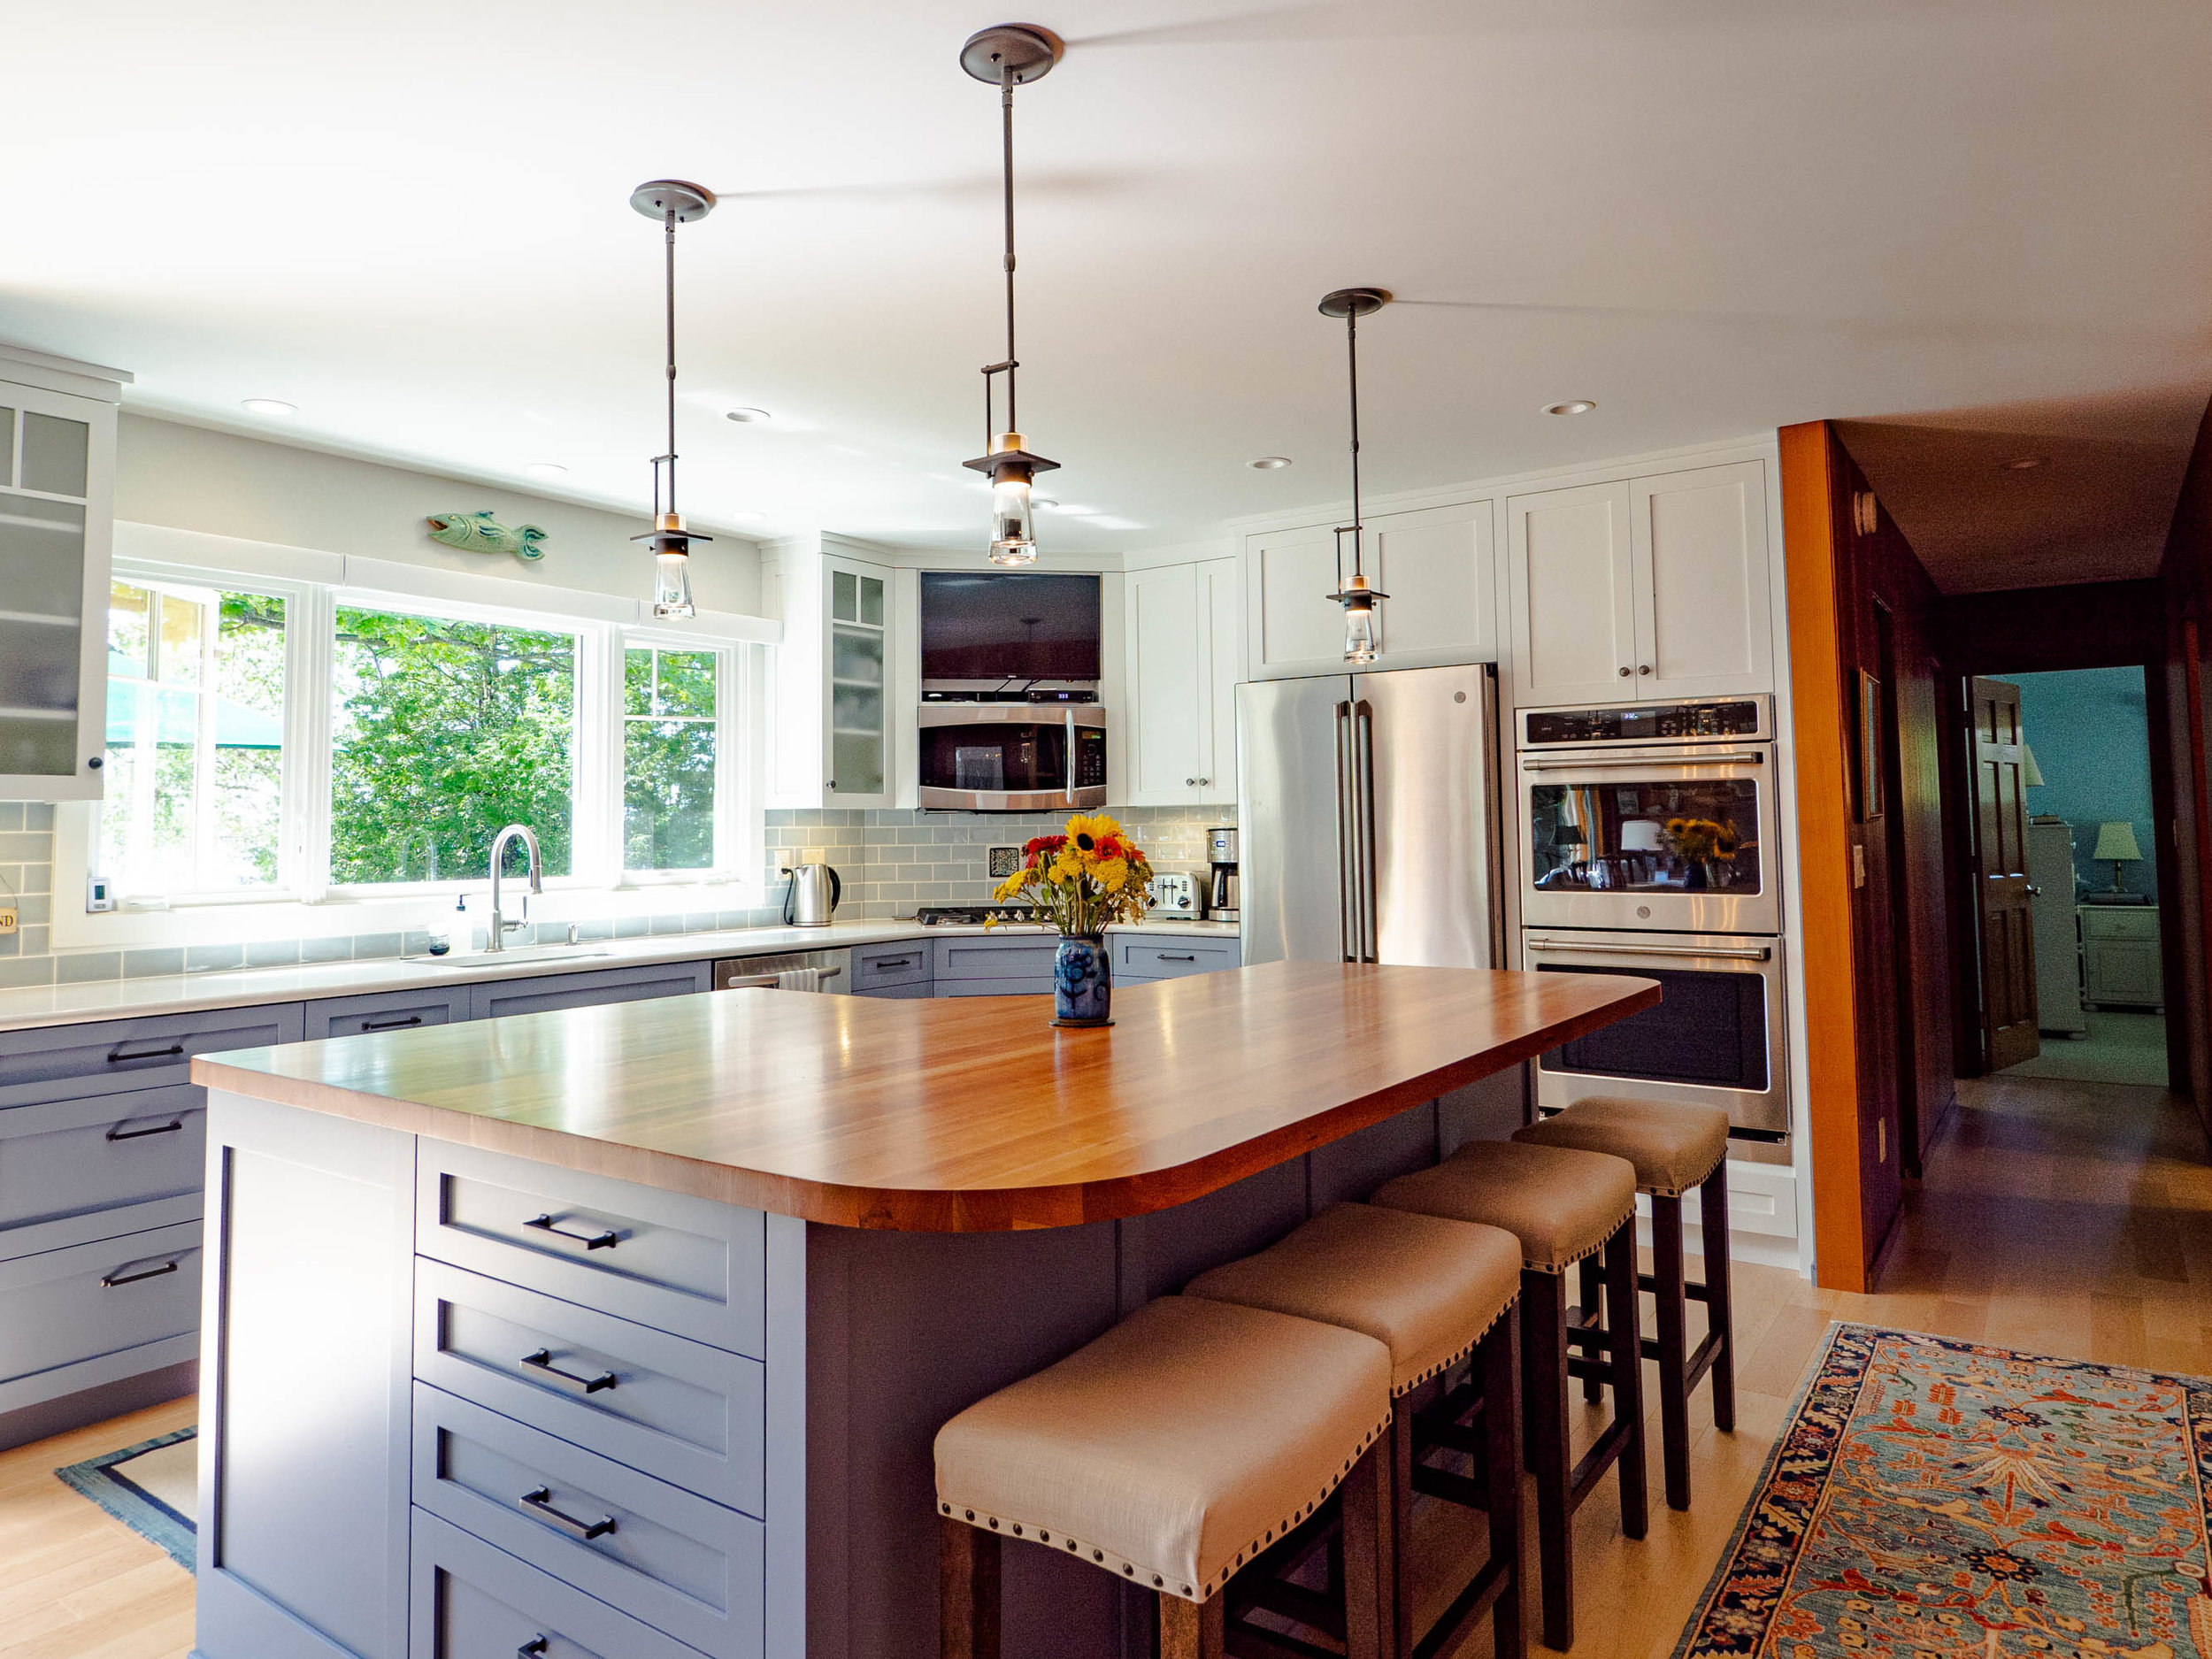 Home Remodeling& renovation - Transform your home and living spaces into something that reflects you.